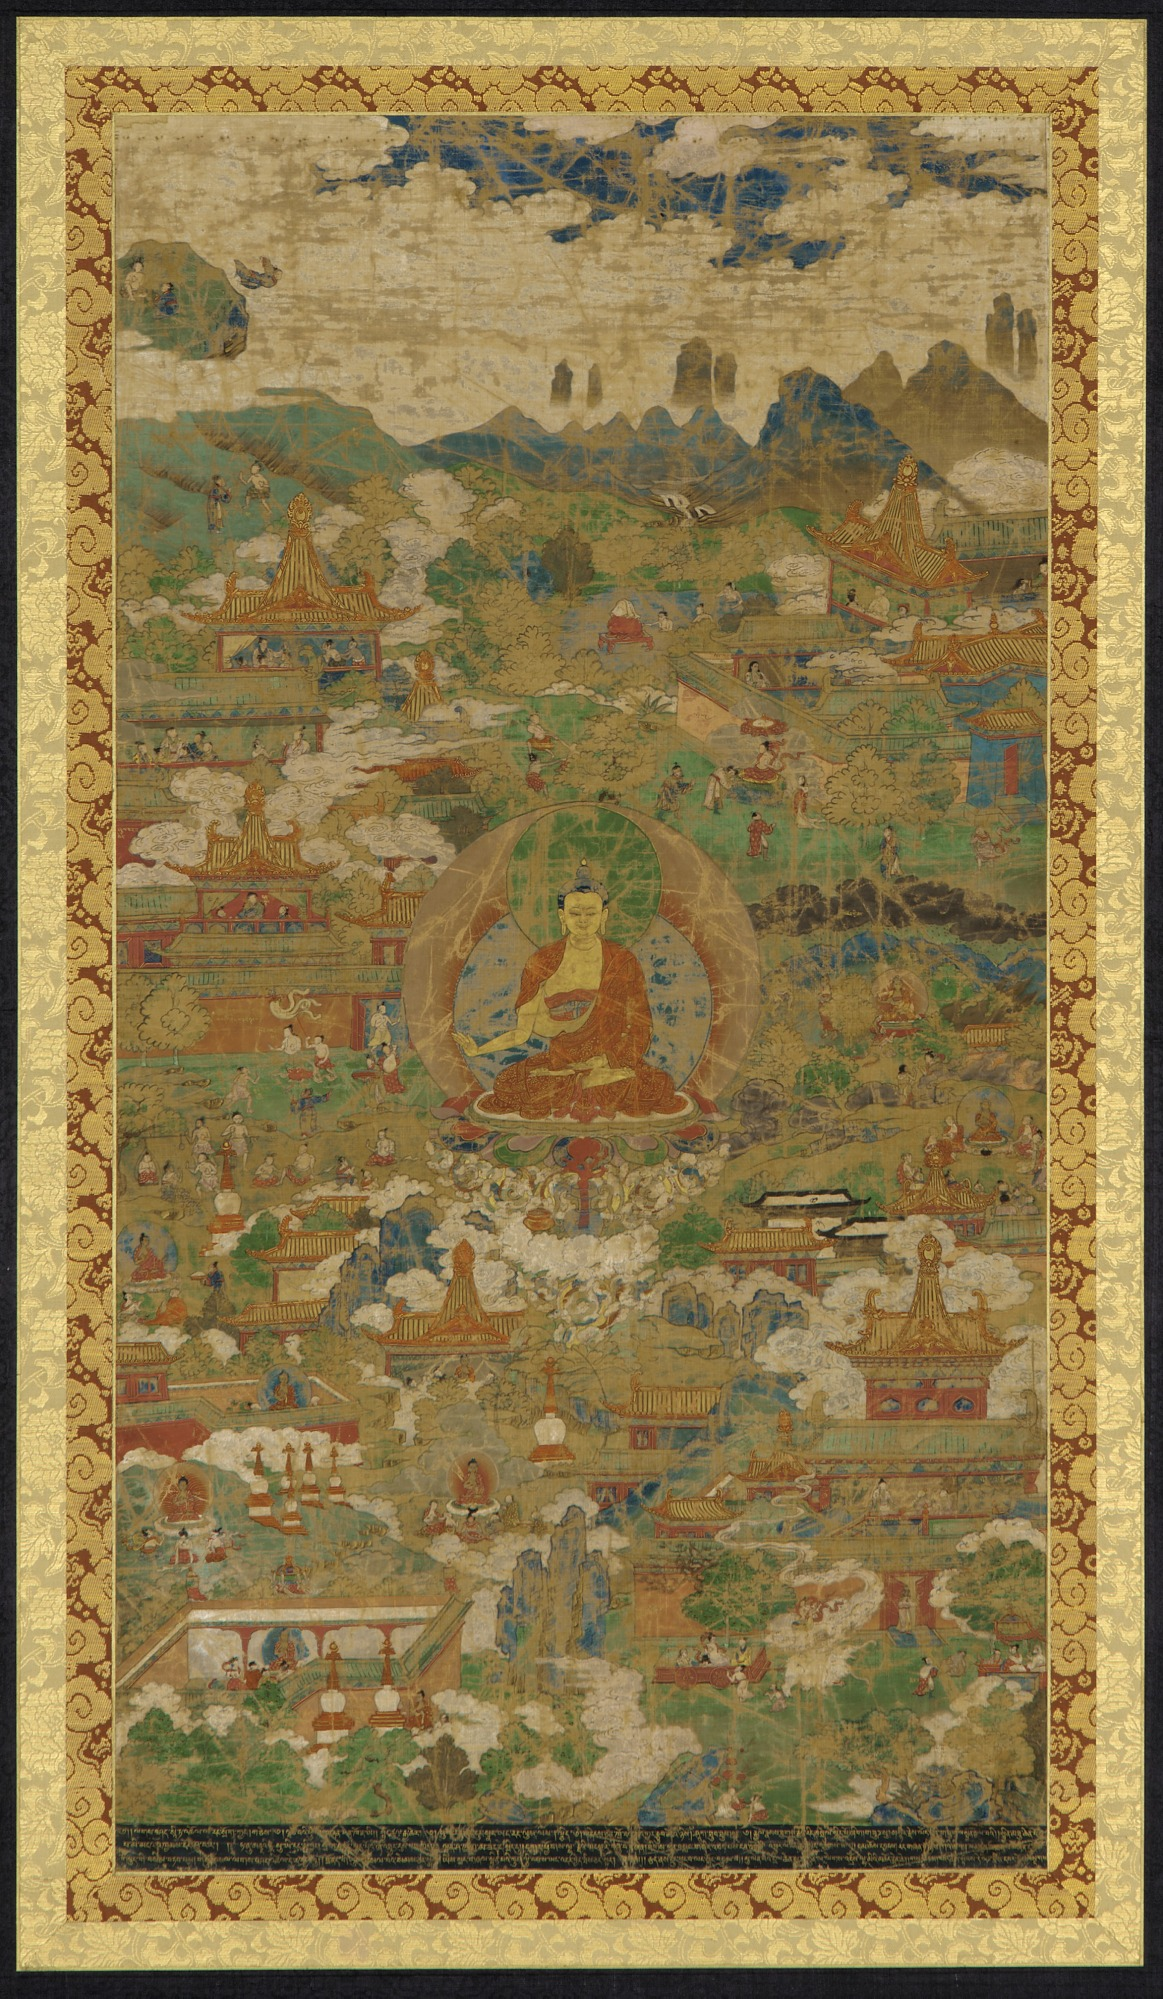 : The Buddha, Sakyamuni, surrounded by biographical scenes